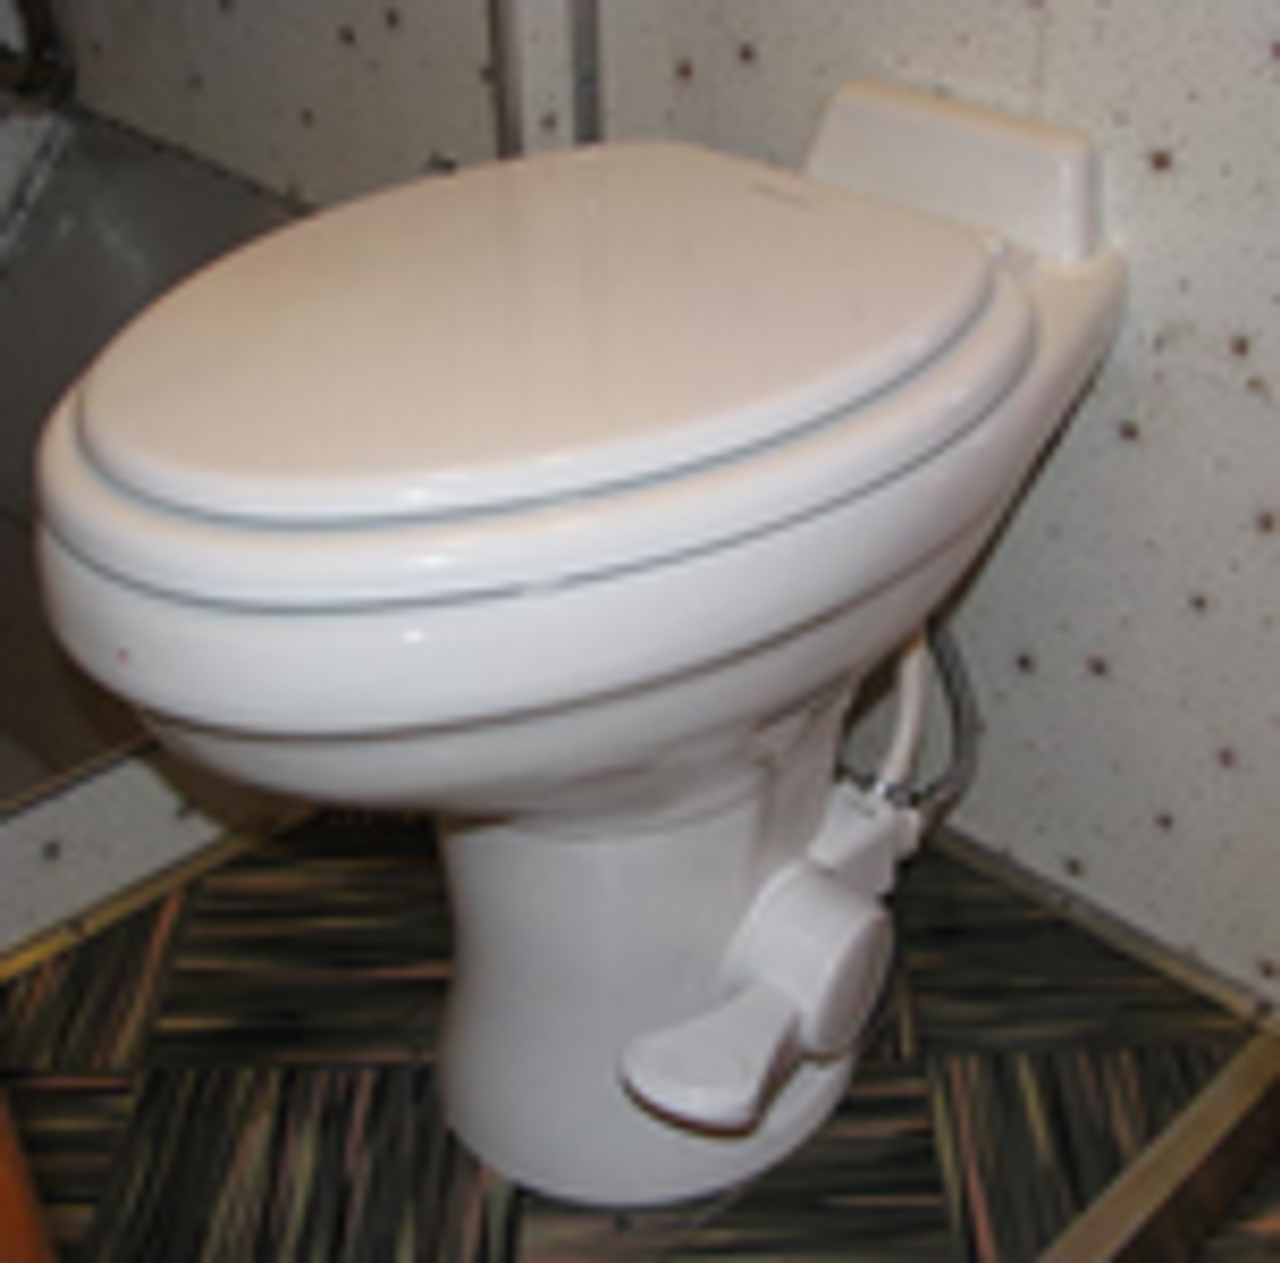 Dometic 310 Toilet White with Sprayer